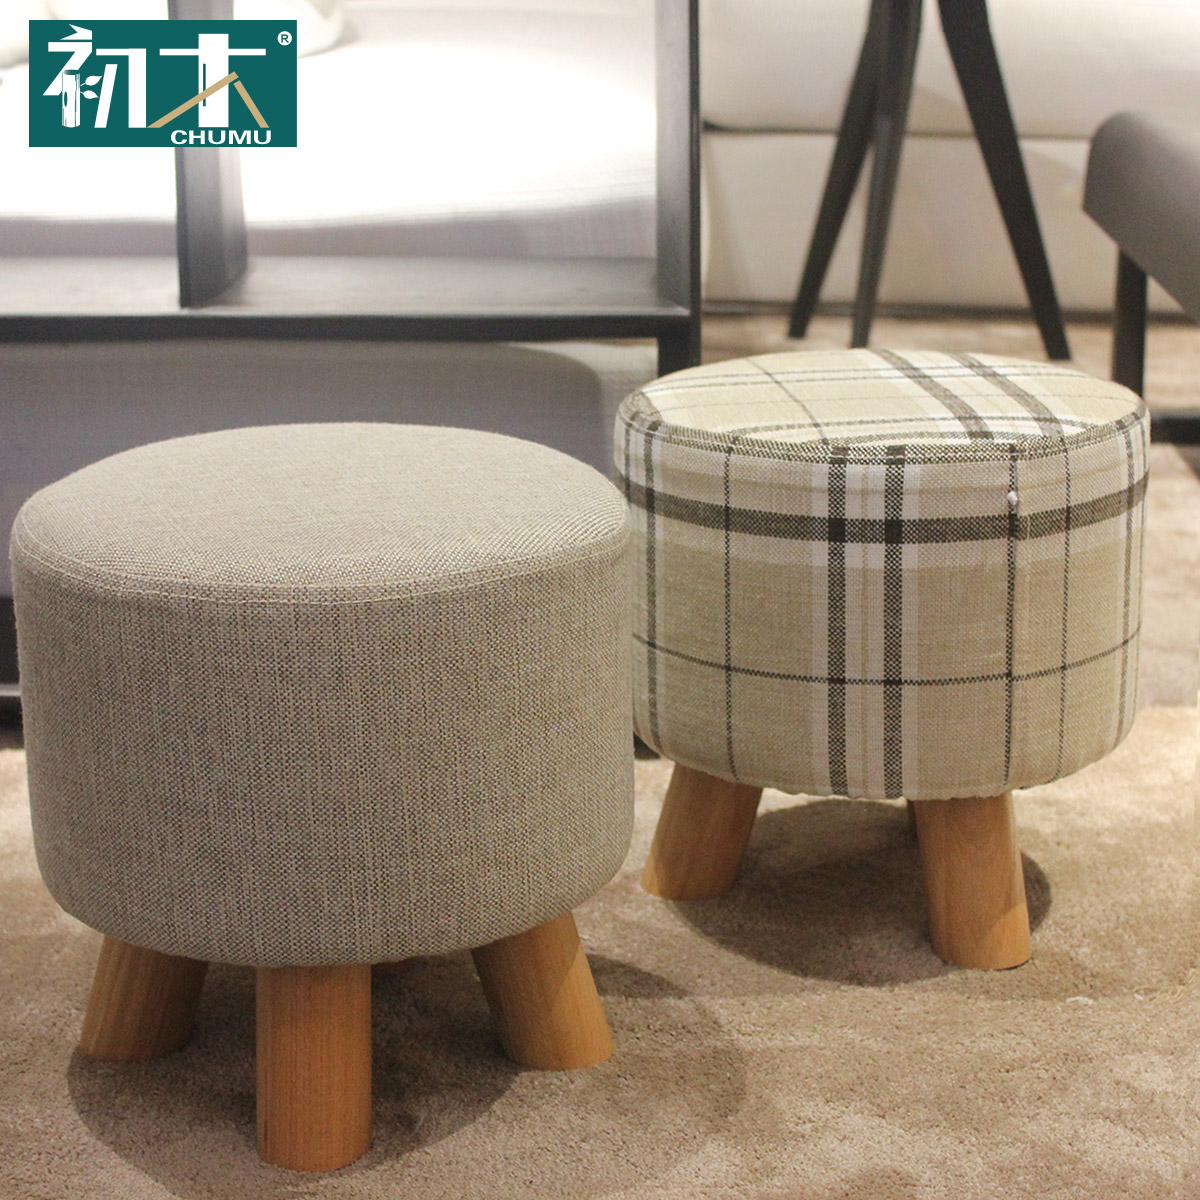 At the beginning of creative small stool stool stool wood stool wood stool changing his shoes fashion shoes stool fabric sofa stool stool stool Small stool